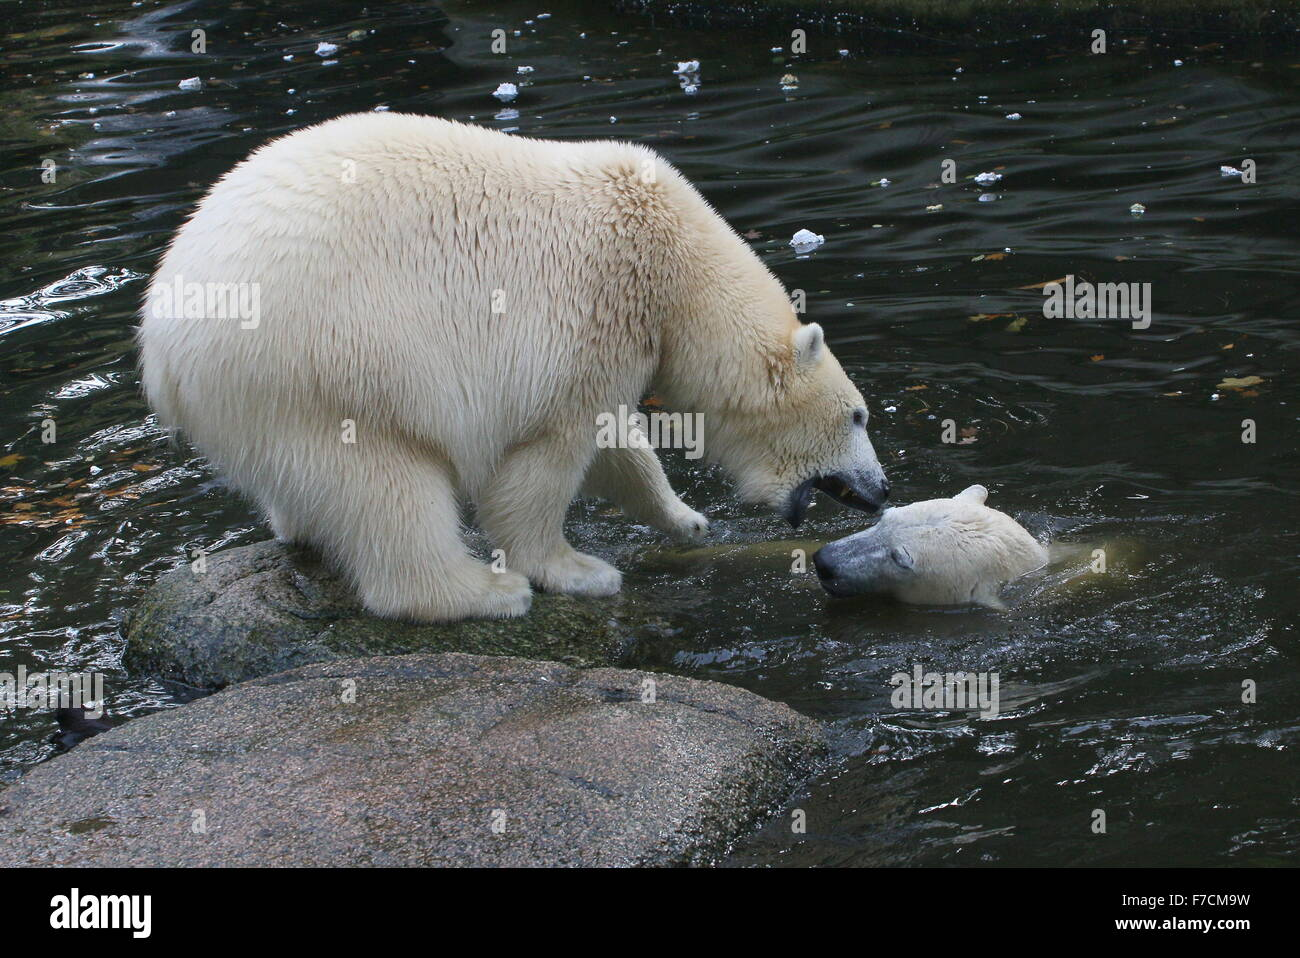 Two female Polar bears (Ursus maritimus) fighting each other on shore, one growling, other surfacing from the water - Stock Image